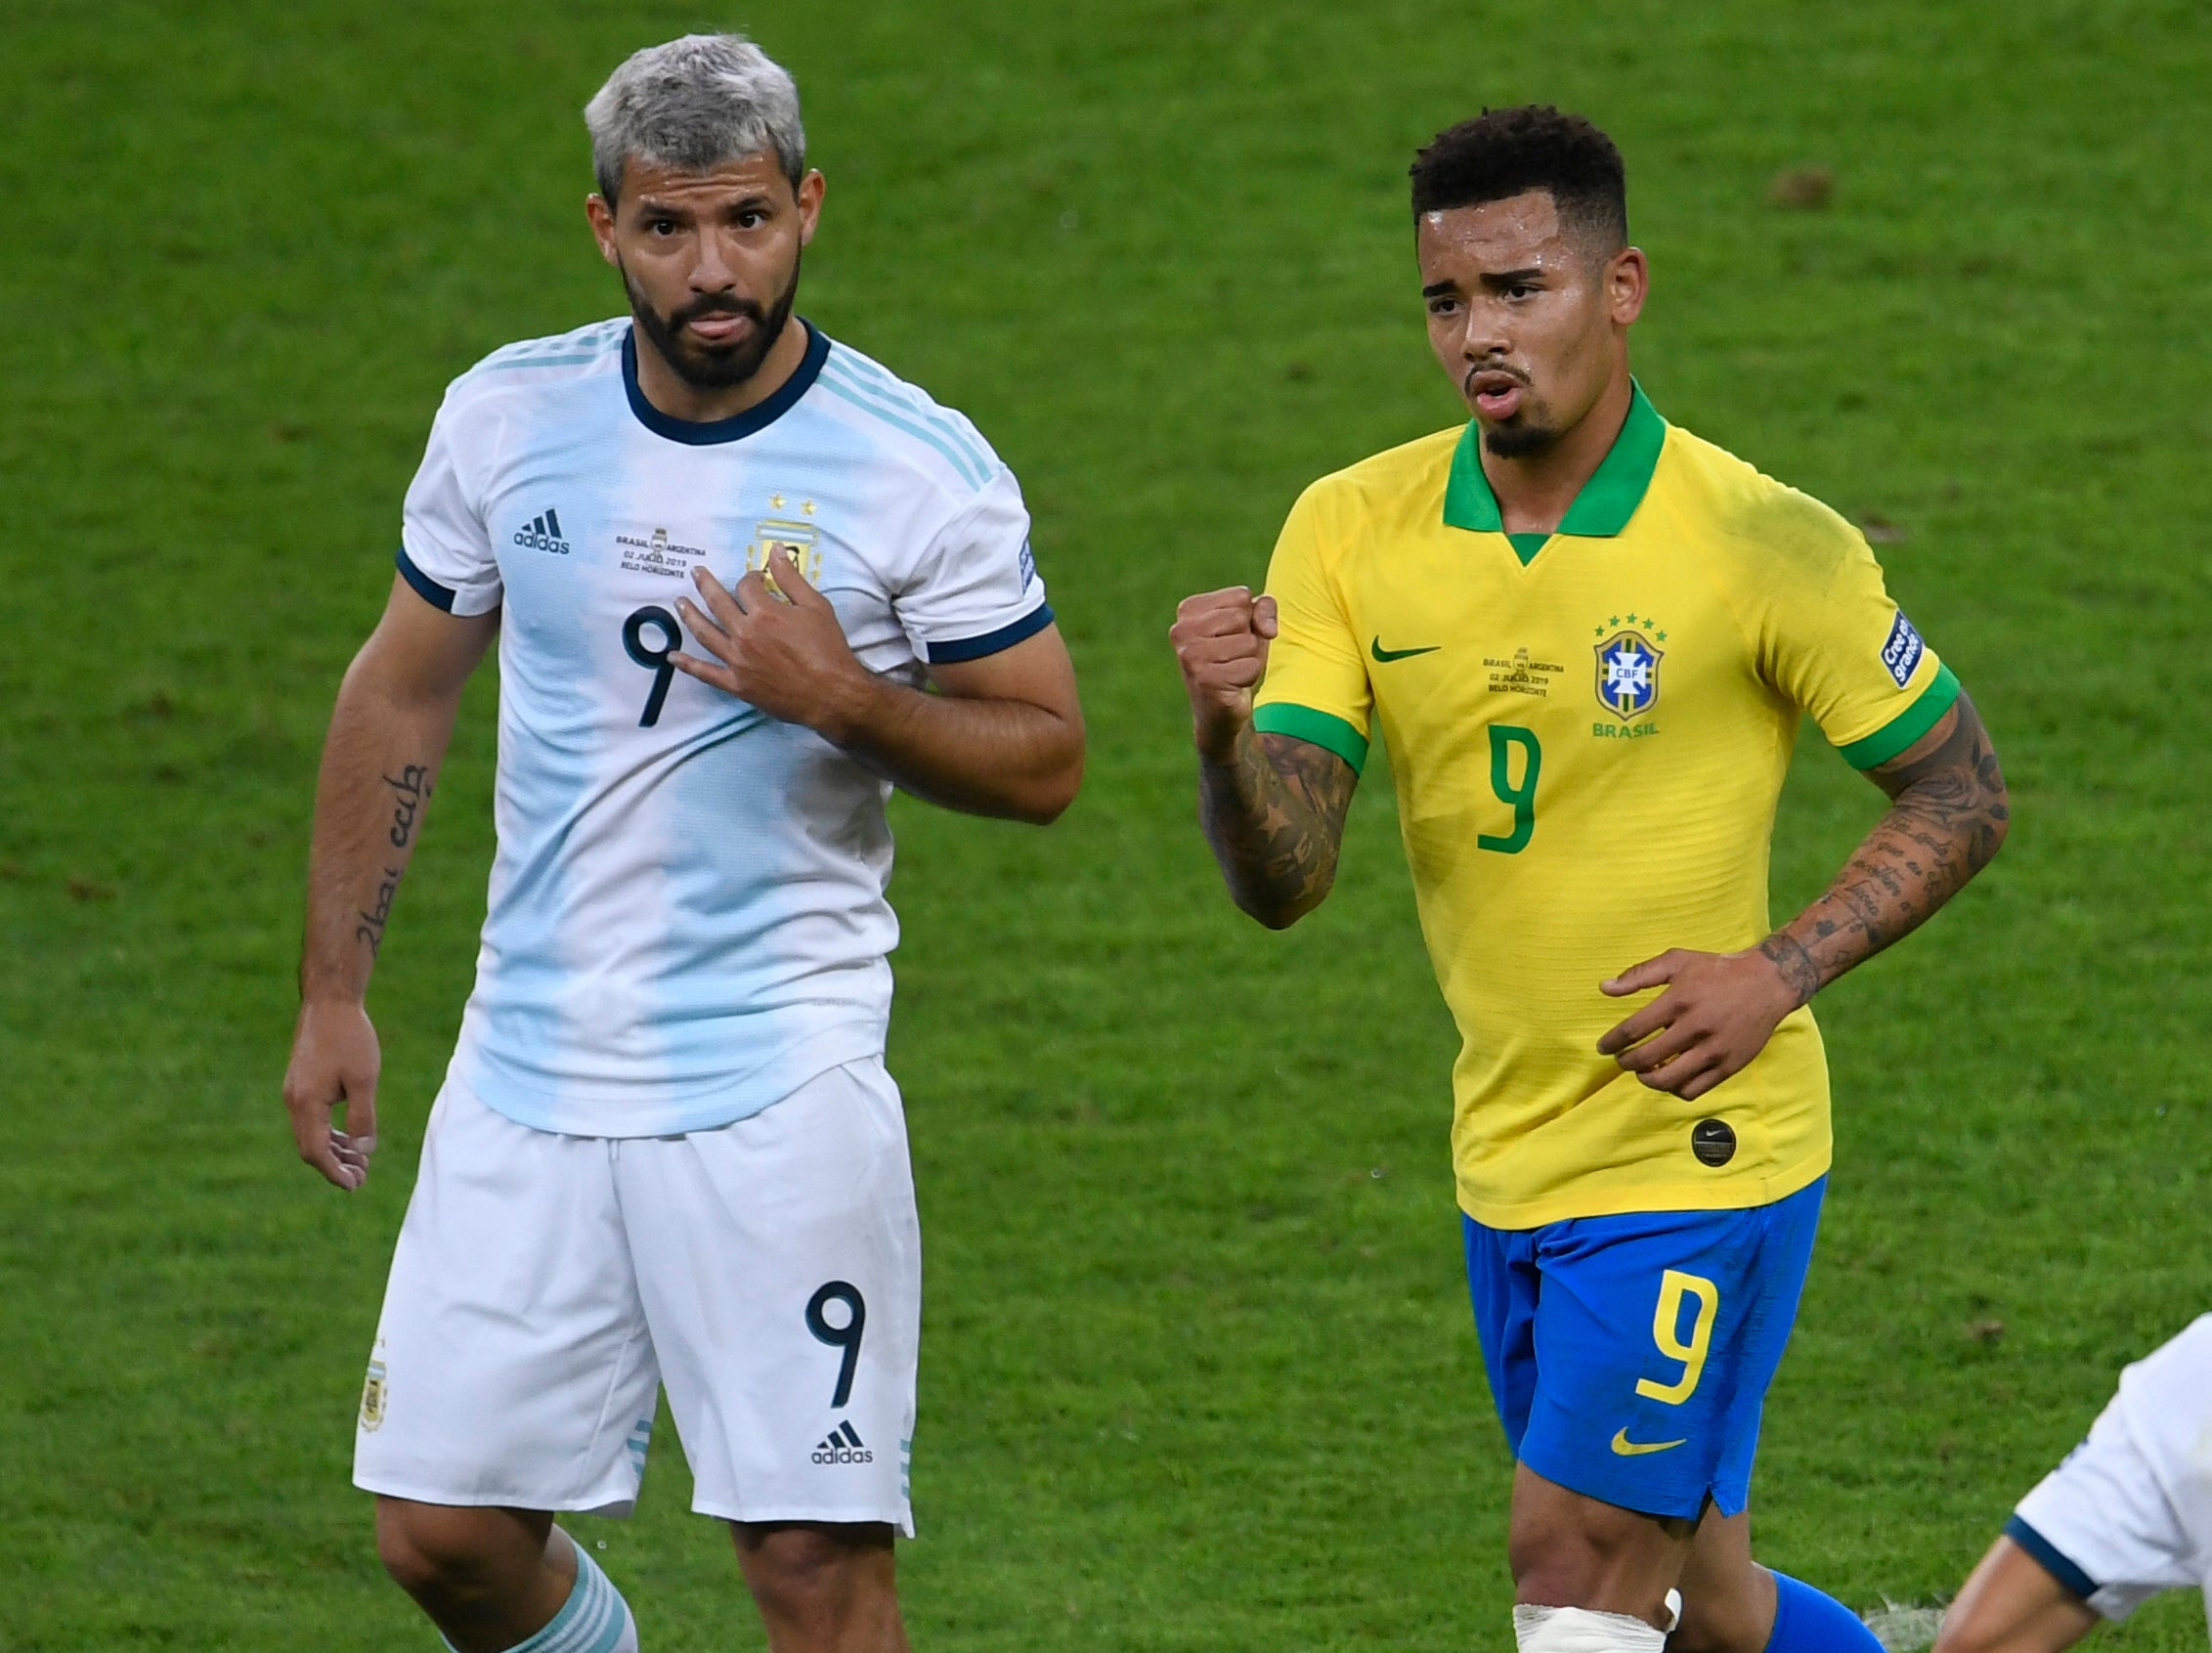 Gabriel Jesus learning all he can from Manchester City team-mate Sergio Aguero